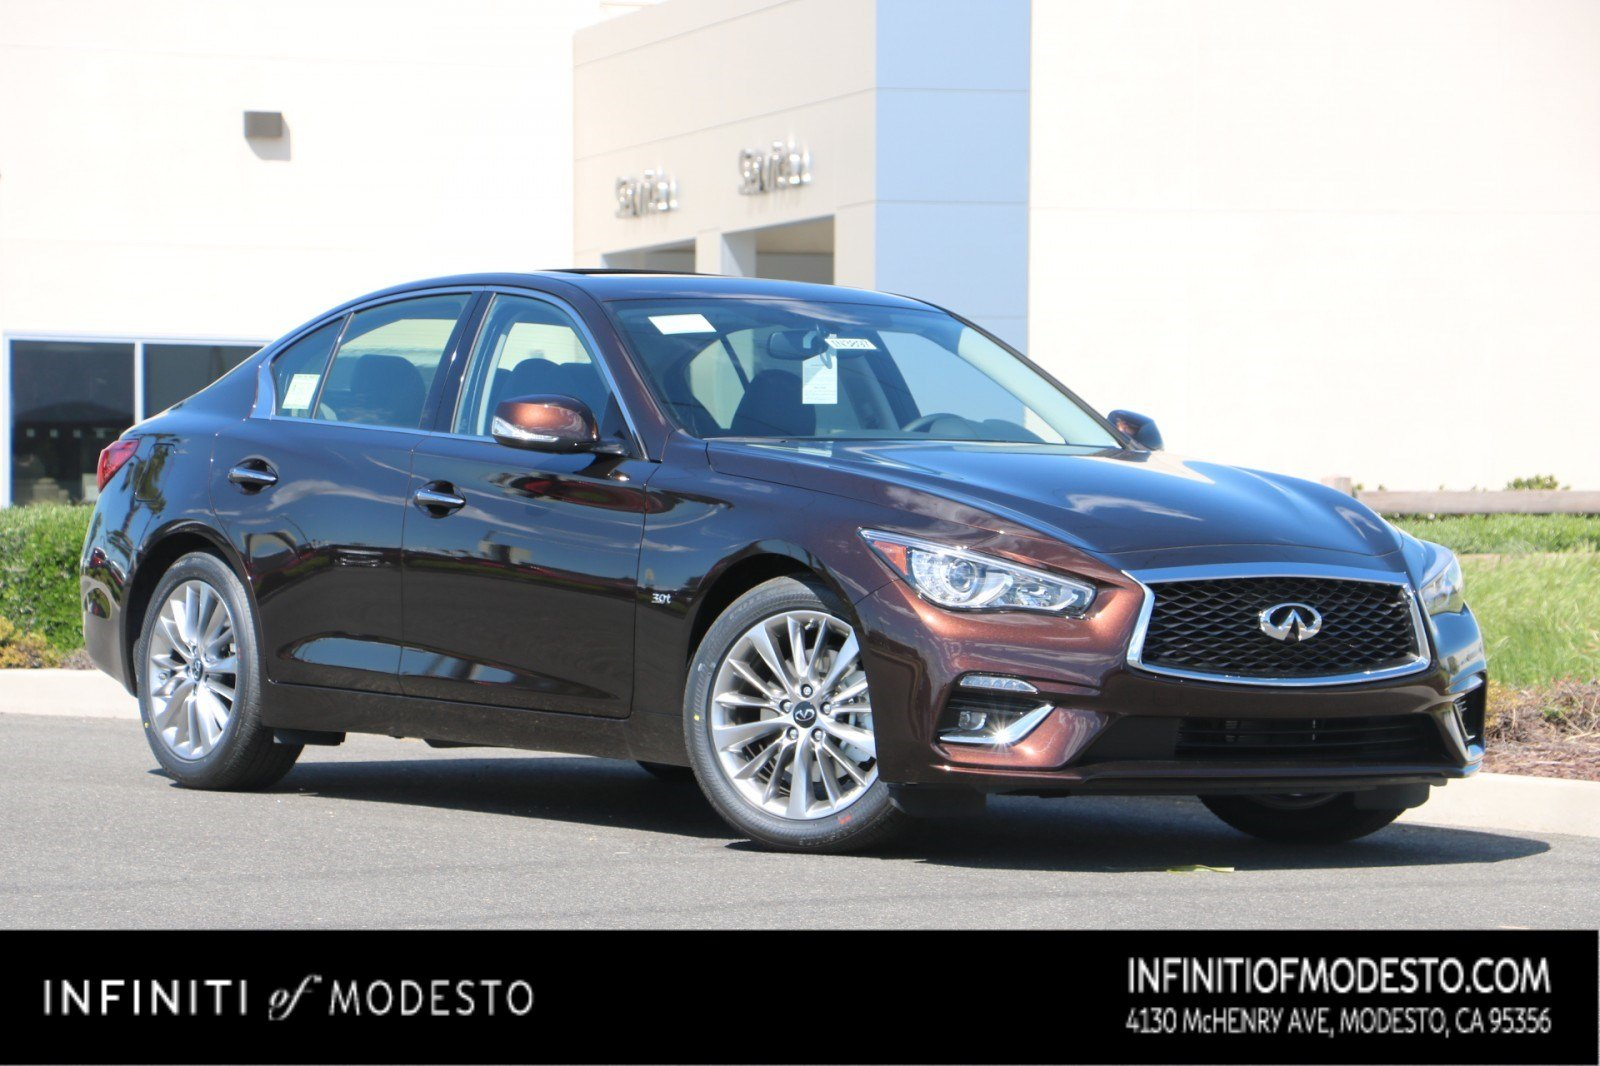 <center>NEW<br>2019 INFINITI Q50<br>3.0t LUXE <br> WITH NAVIGATION</center>